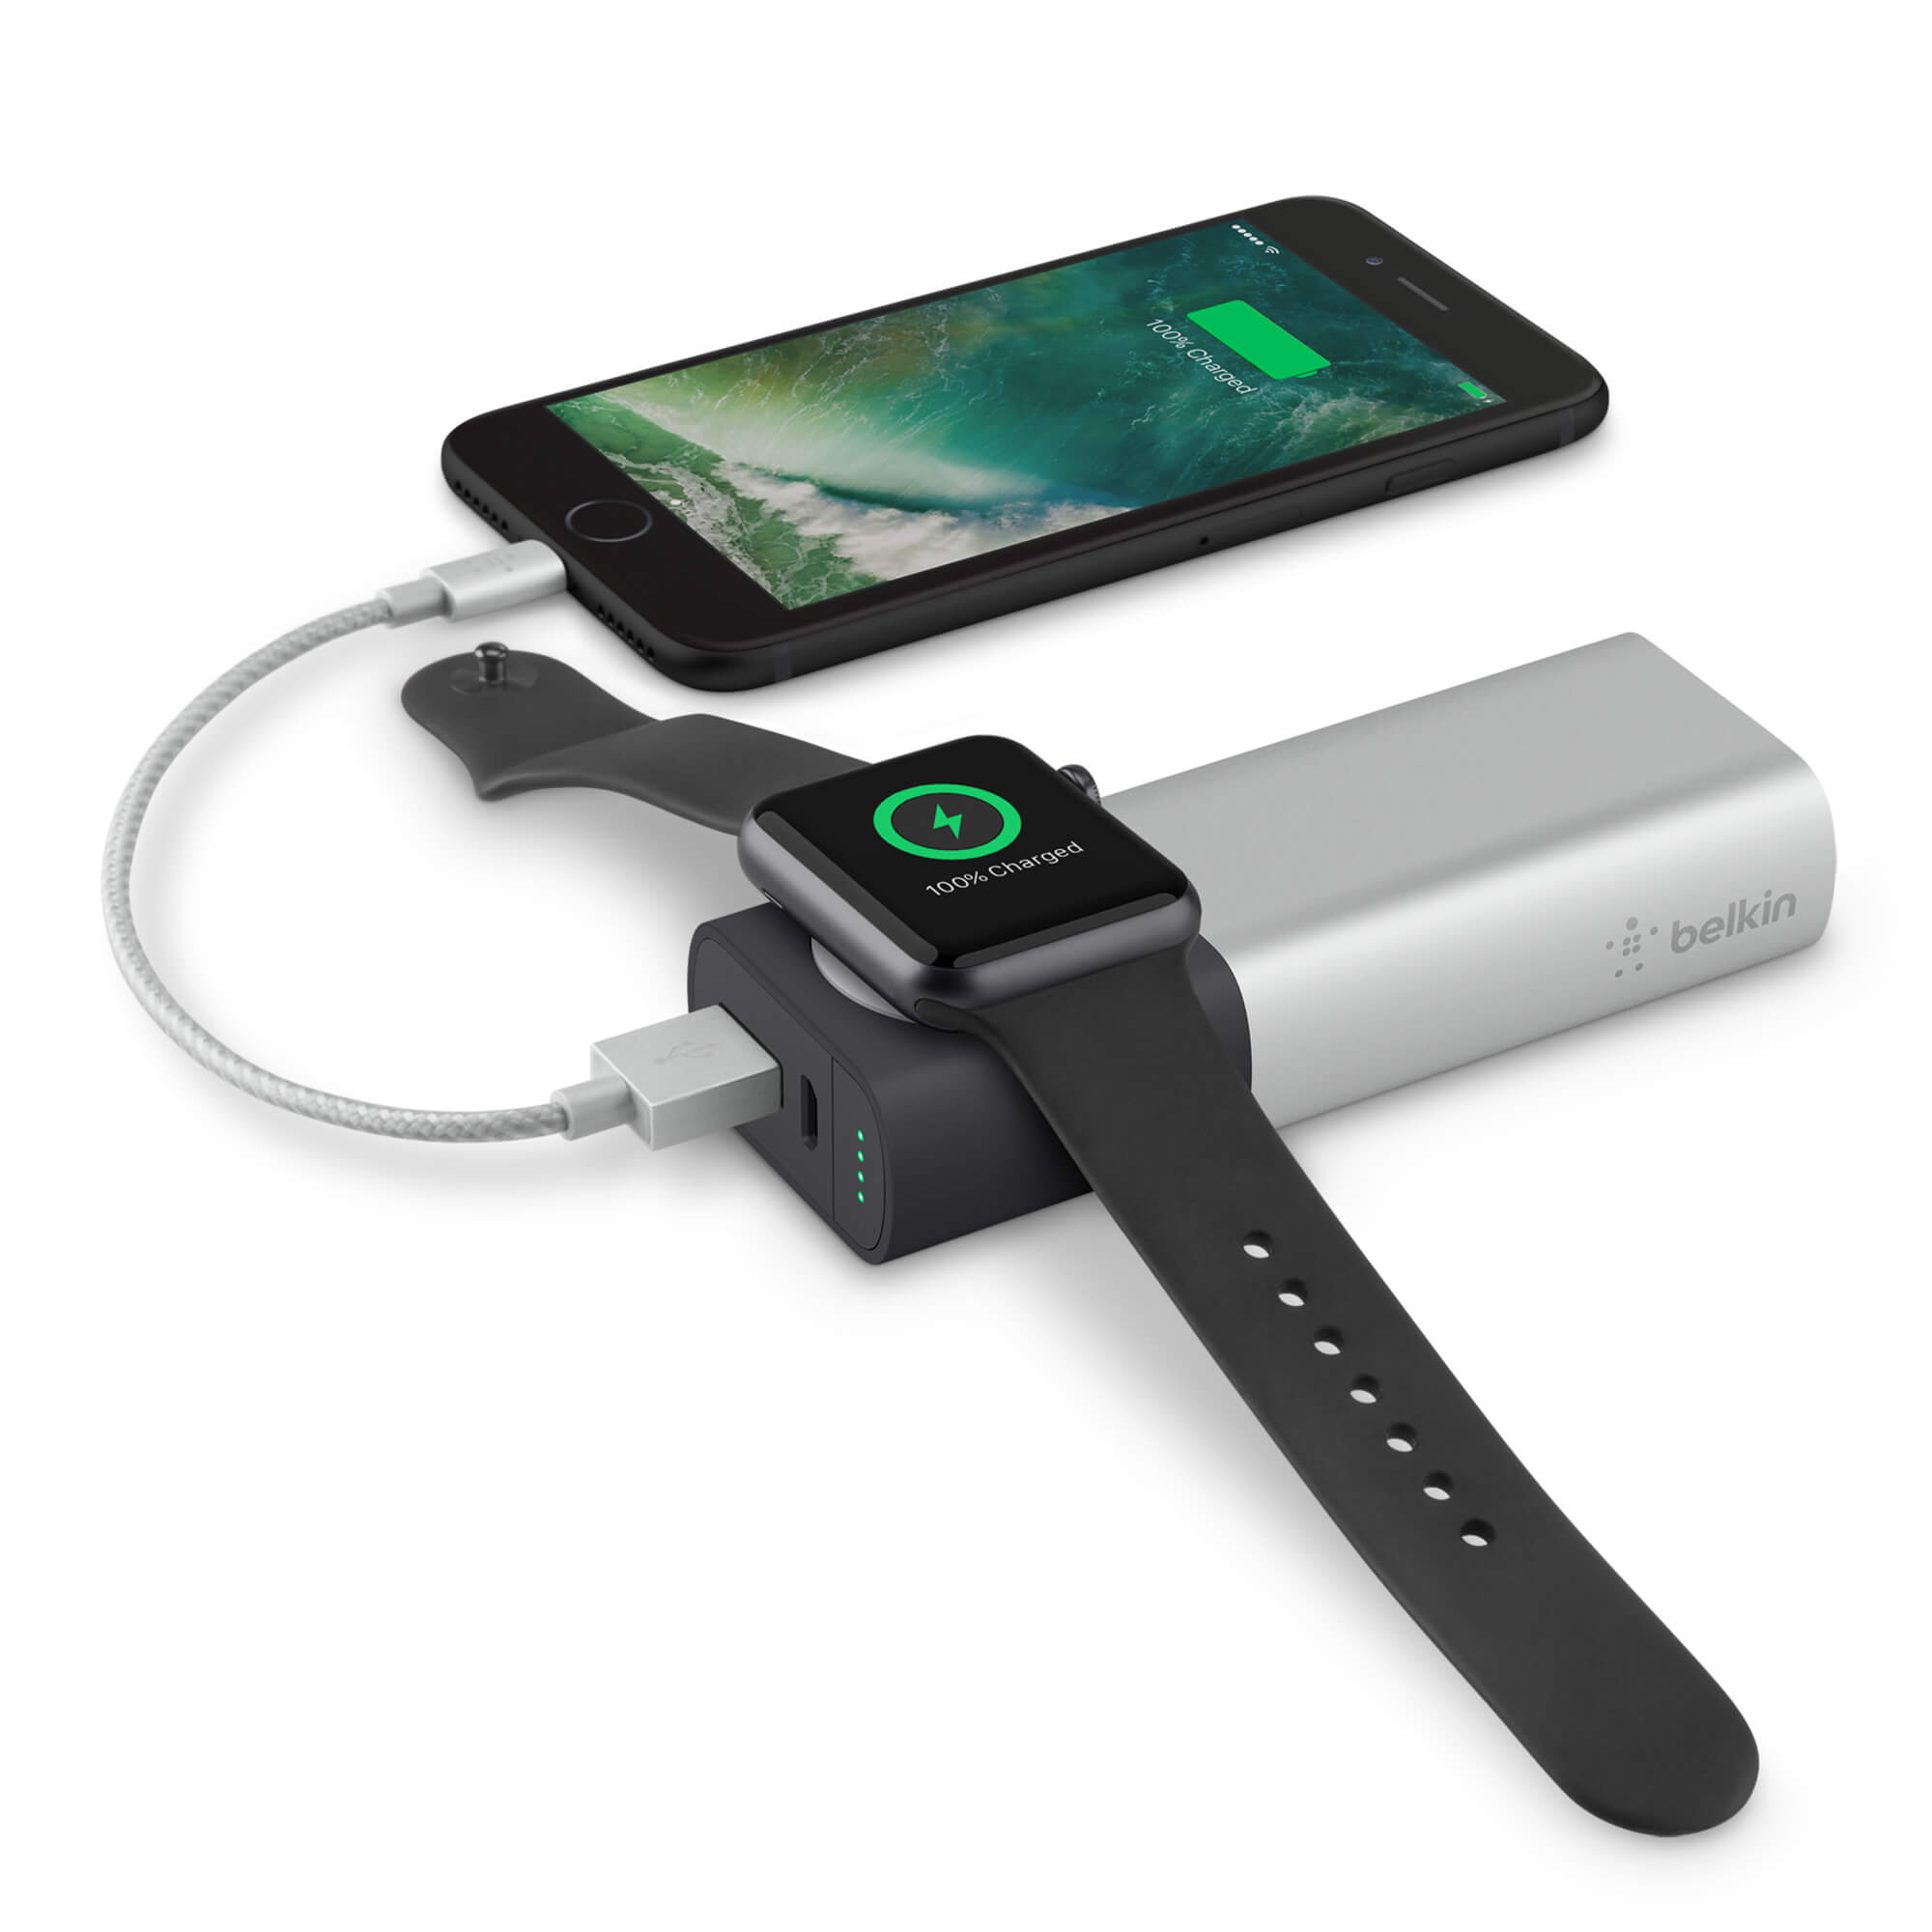 Belkin Valet Charger Power Pack 6700 mAh for Apple Watch+iPhone (silver)